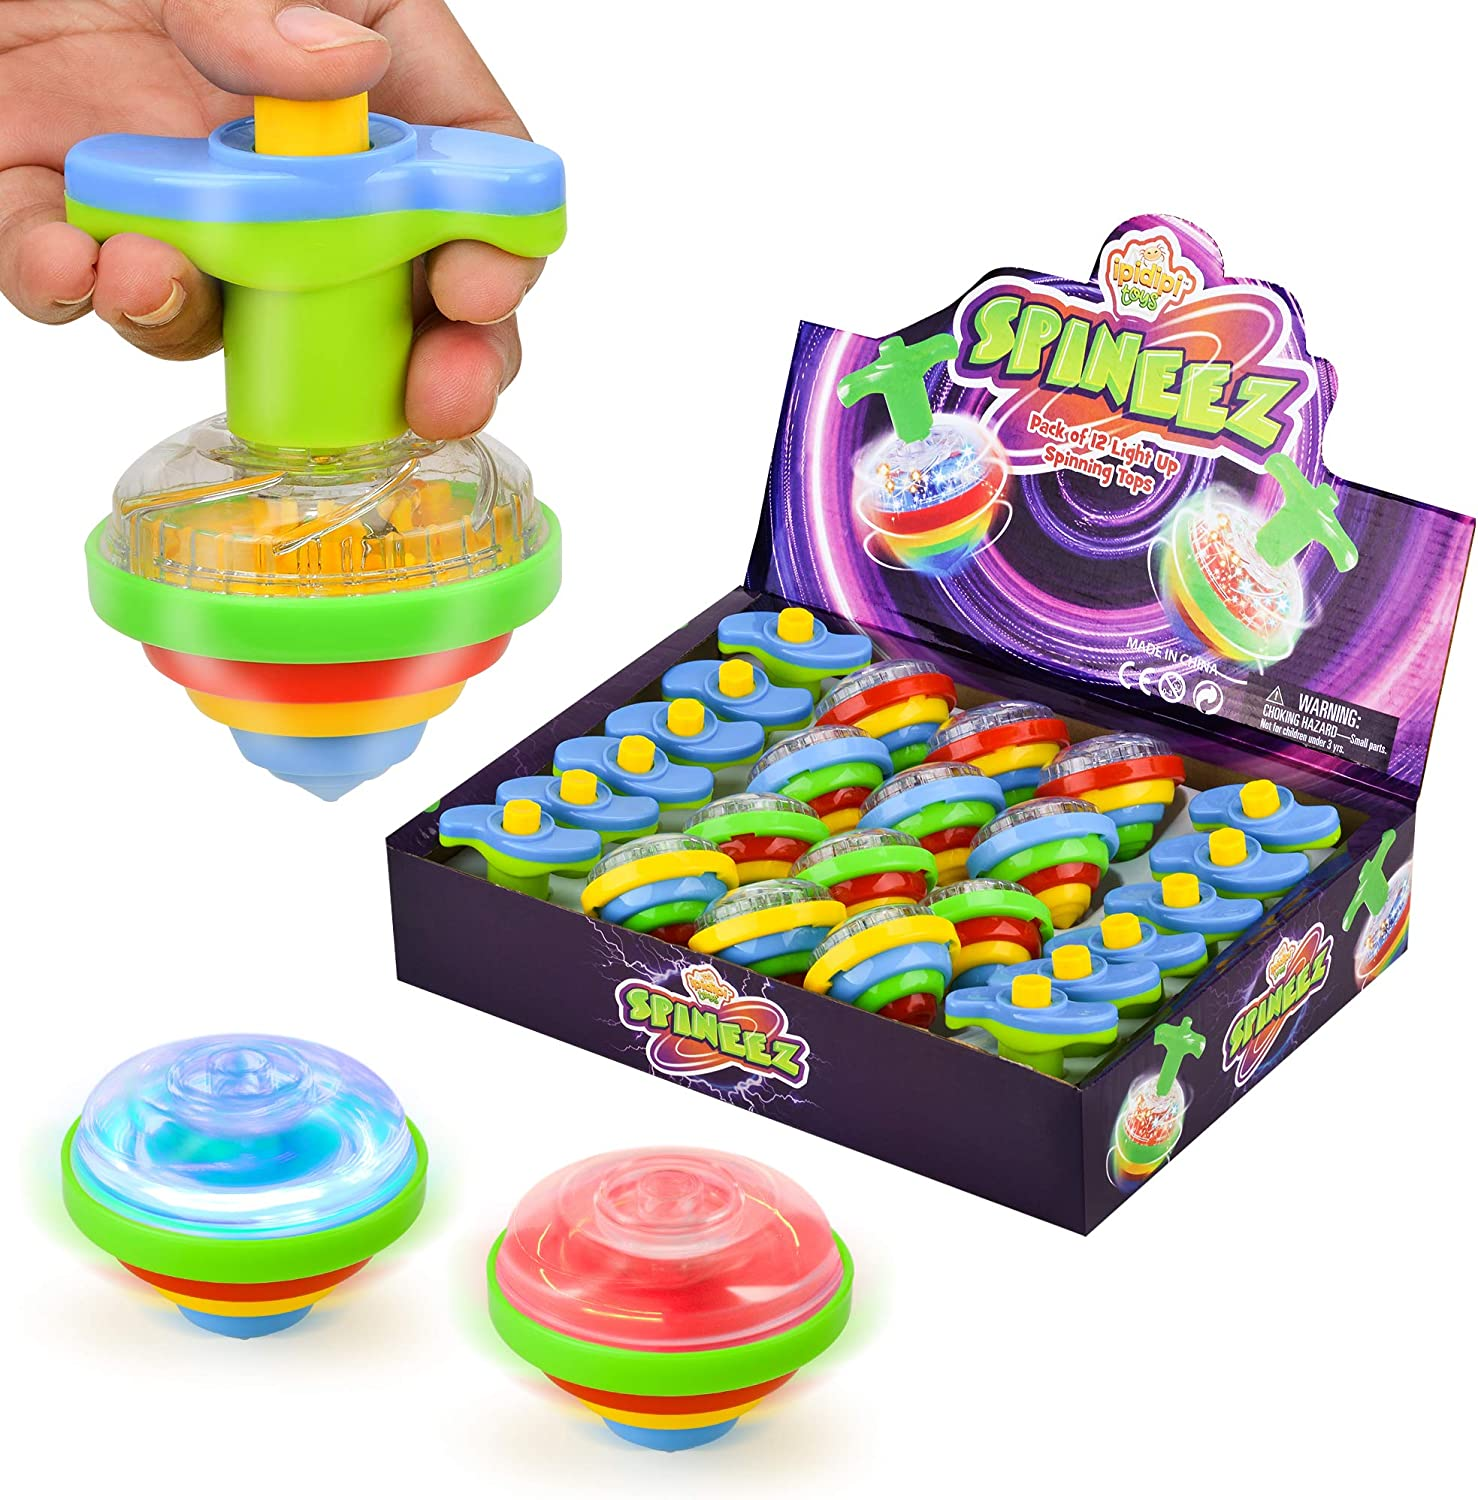 Light Up Spinning Tops for Kids, Set of 12, UFO Spinner Toys with Flashing LED Lights, Fun Birthday Party Favors, Goodie Bag Fillers for Boys and Girls, Stocking Stuffers Display Box